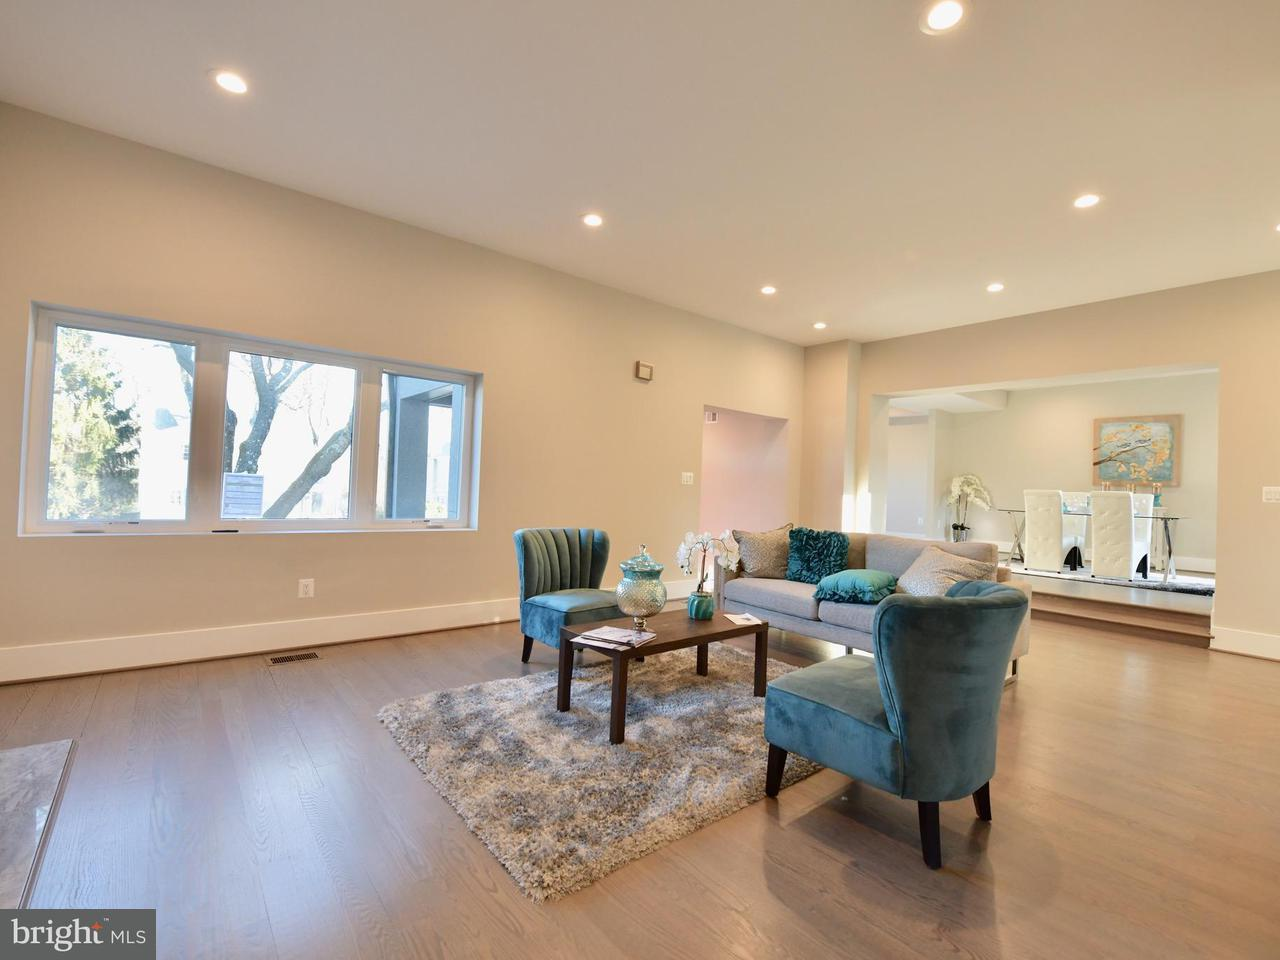 Additional photo for property listing at 215 Greenway Blvd W 215 Greenway Blvd W Falls Church, Virginia 22046 Vereinigte Staaten